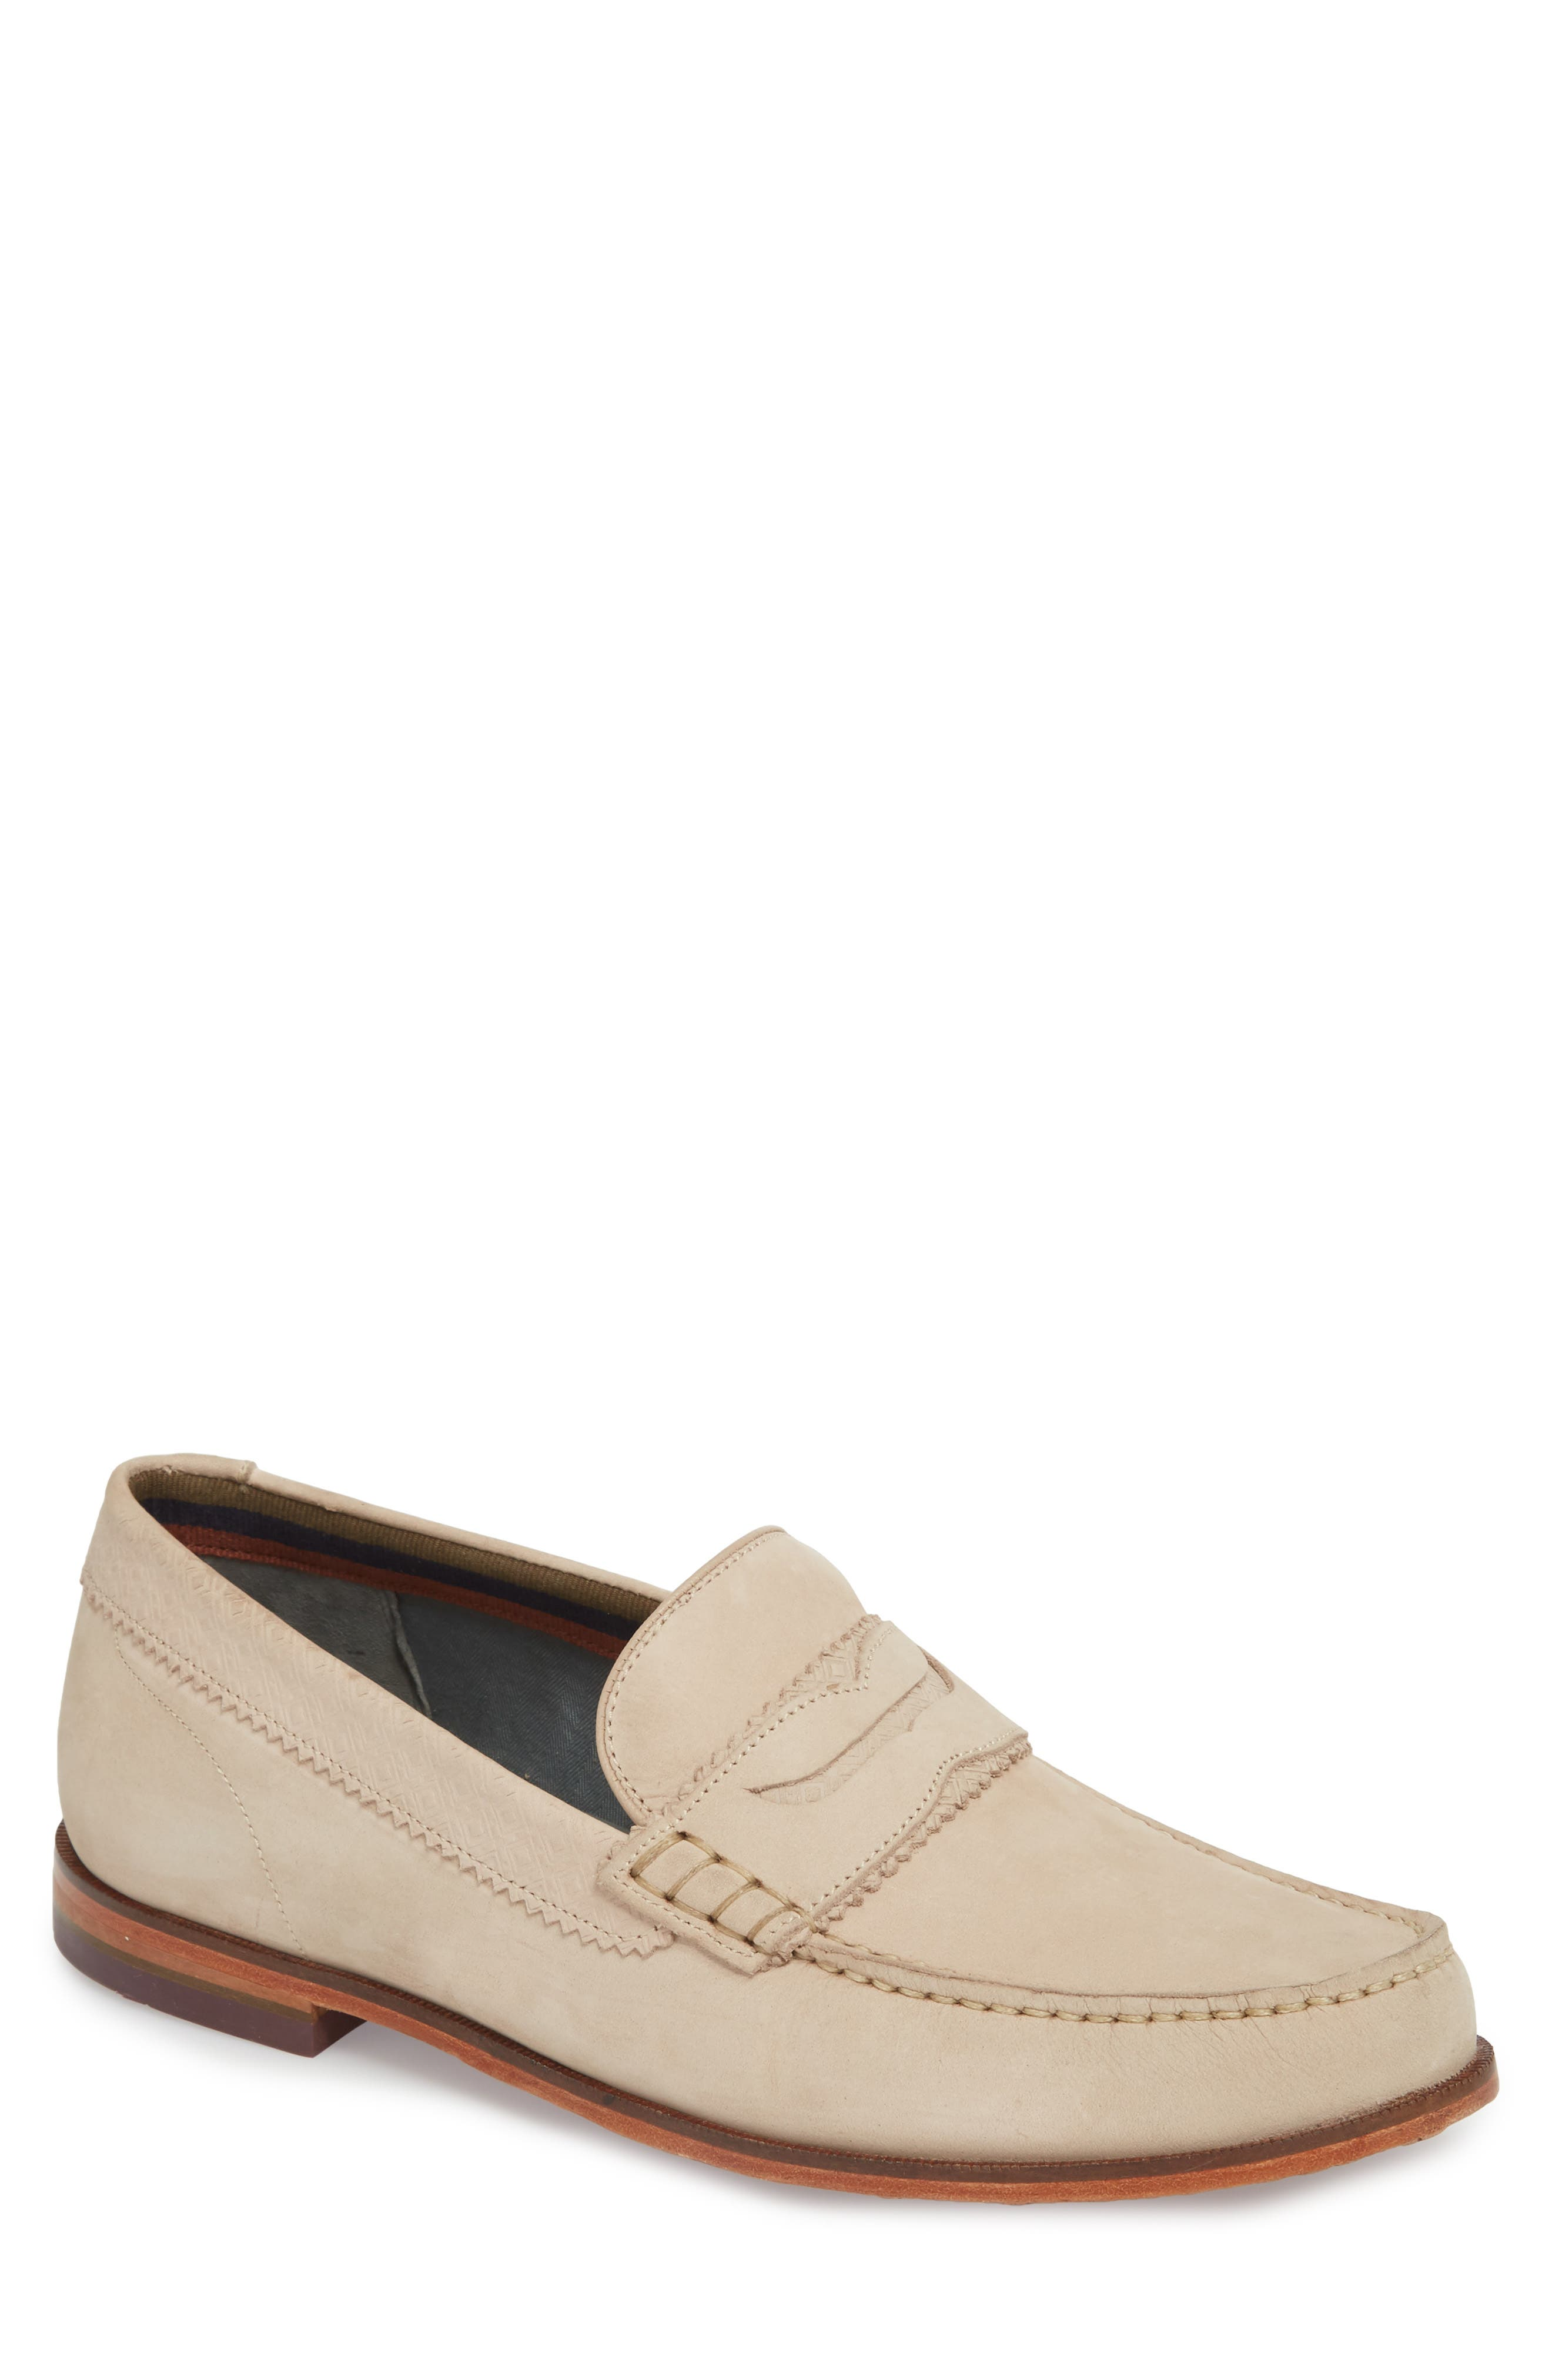 Miicke 6 Nubuck Loafers In Beige - Beige Ted Baker Free Shipping Amazon Authentic Online Classic Cheap Online Cheap Sale Newest VIlfy